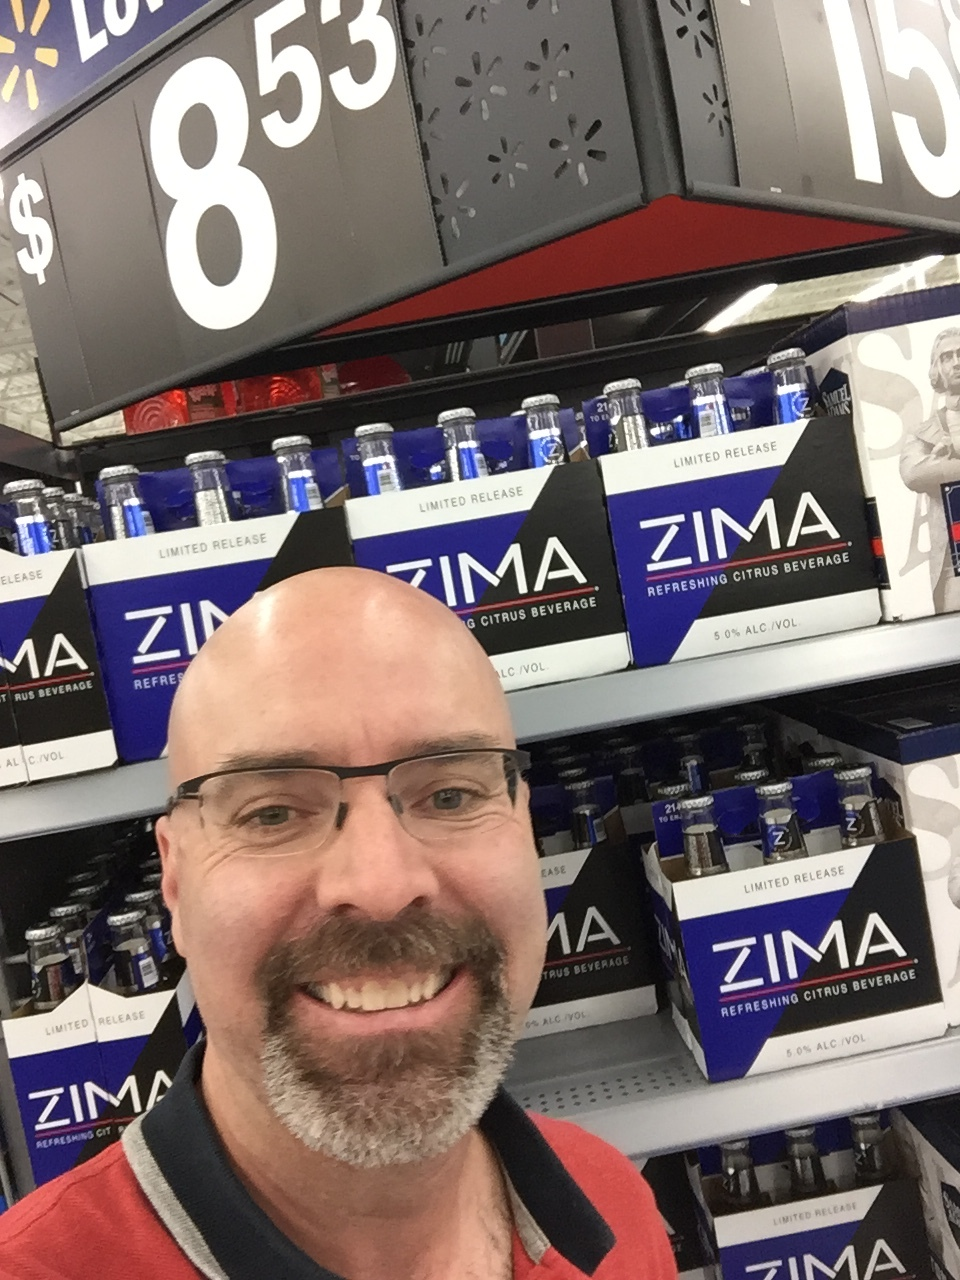 If you need Zima,  BOZEMAN Montana has it stock piled!